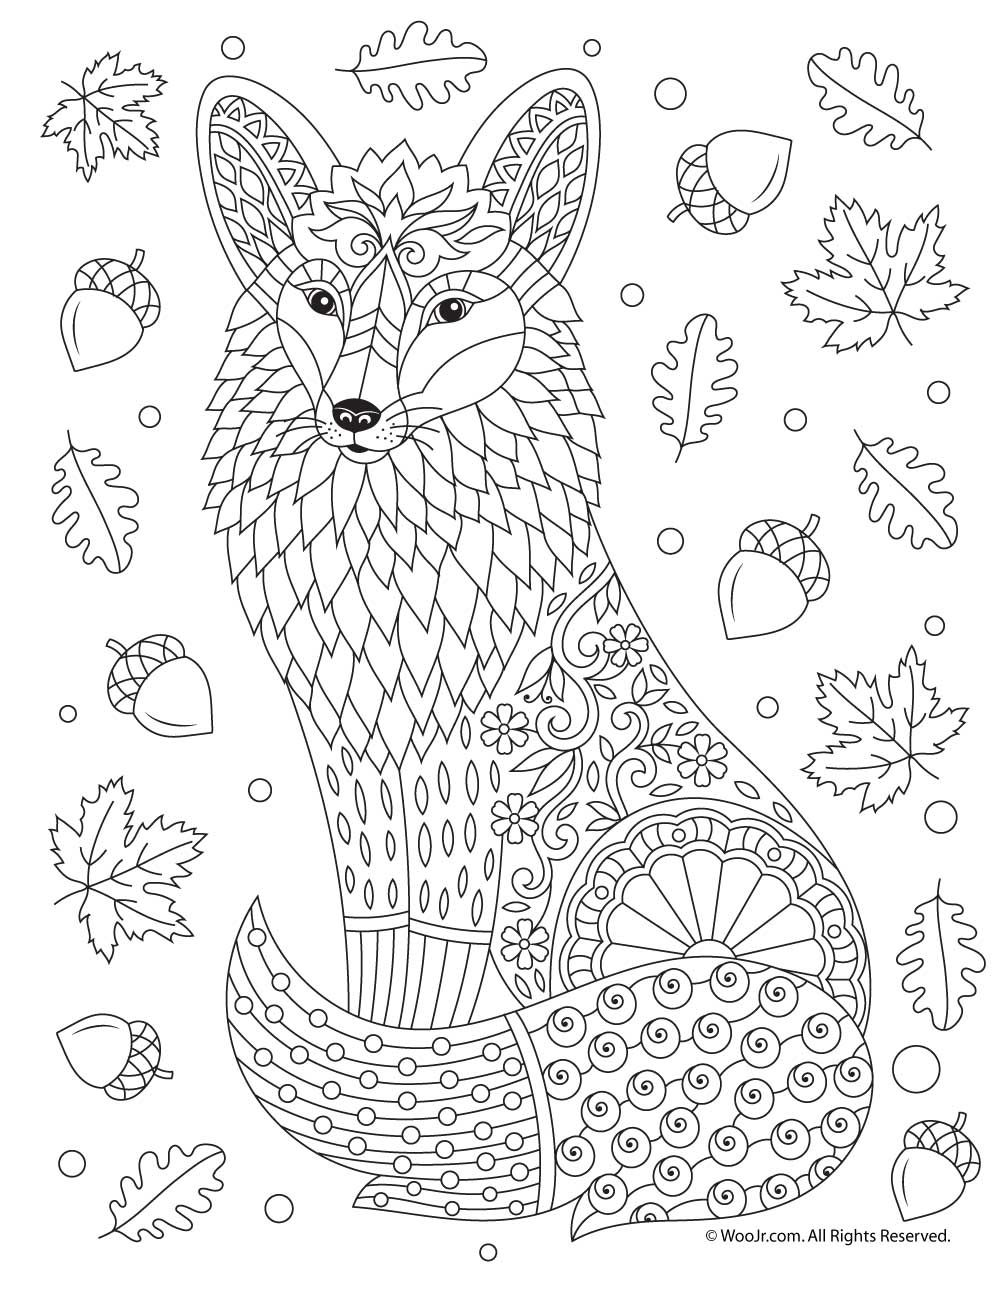 Fall Animal Adult Coloring Pages | Malbücher, Fuchs und Ausmalbilder